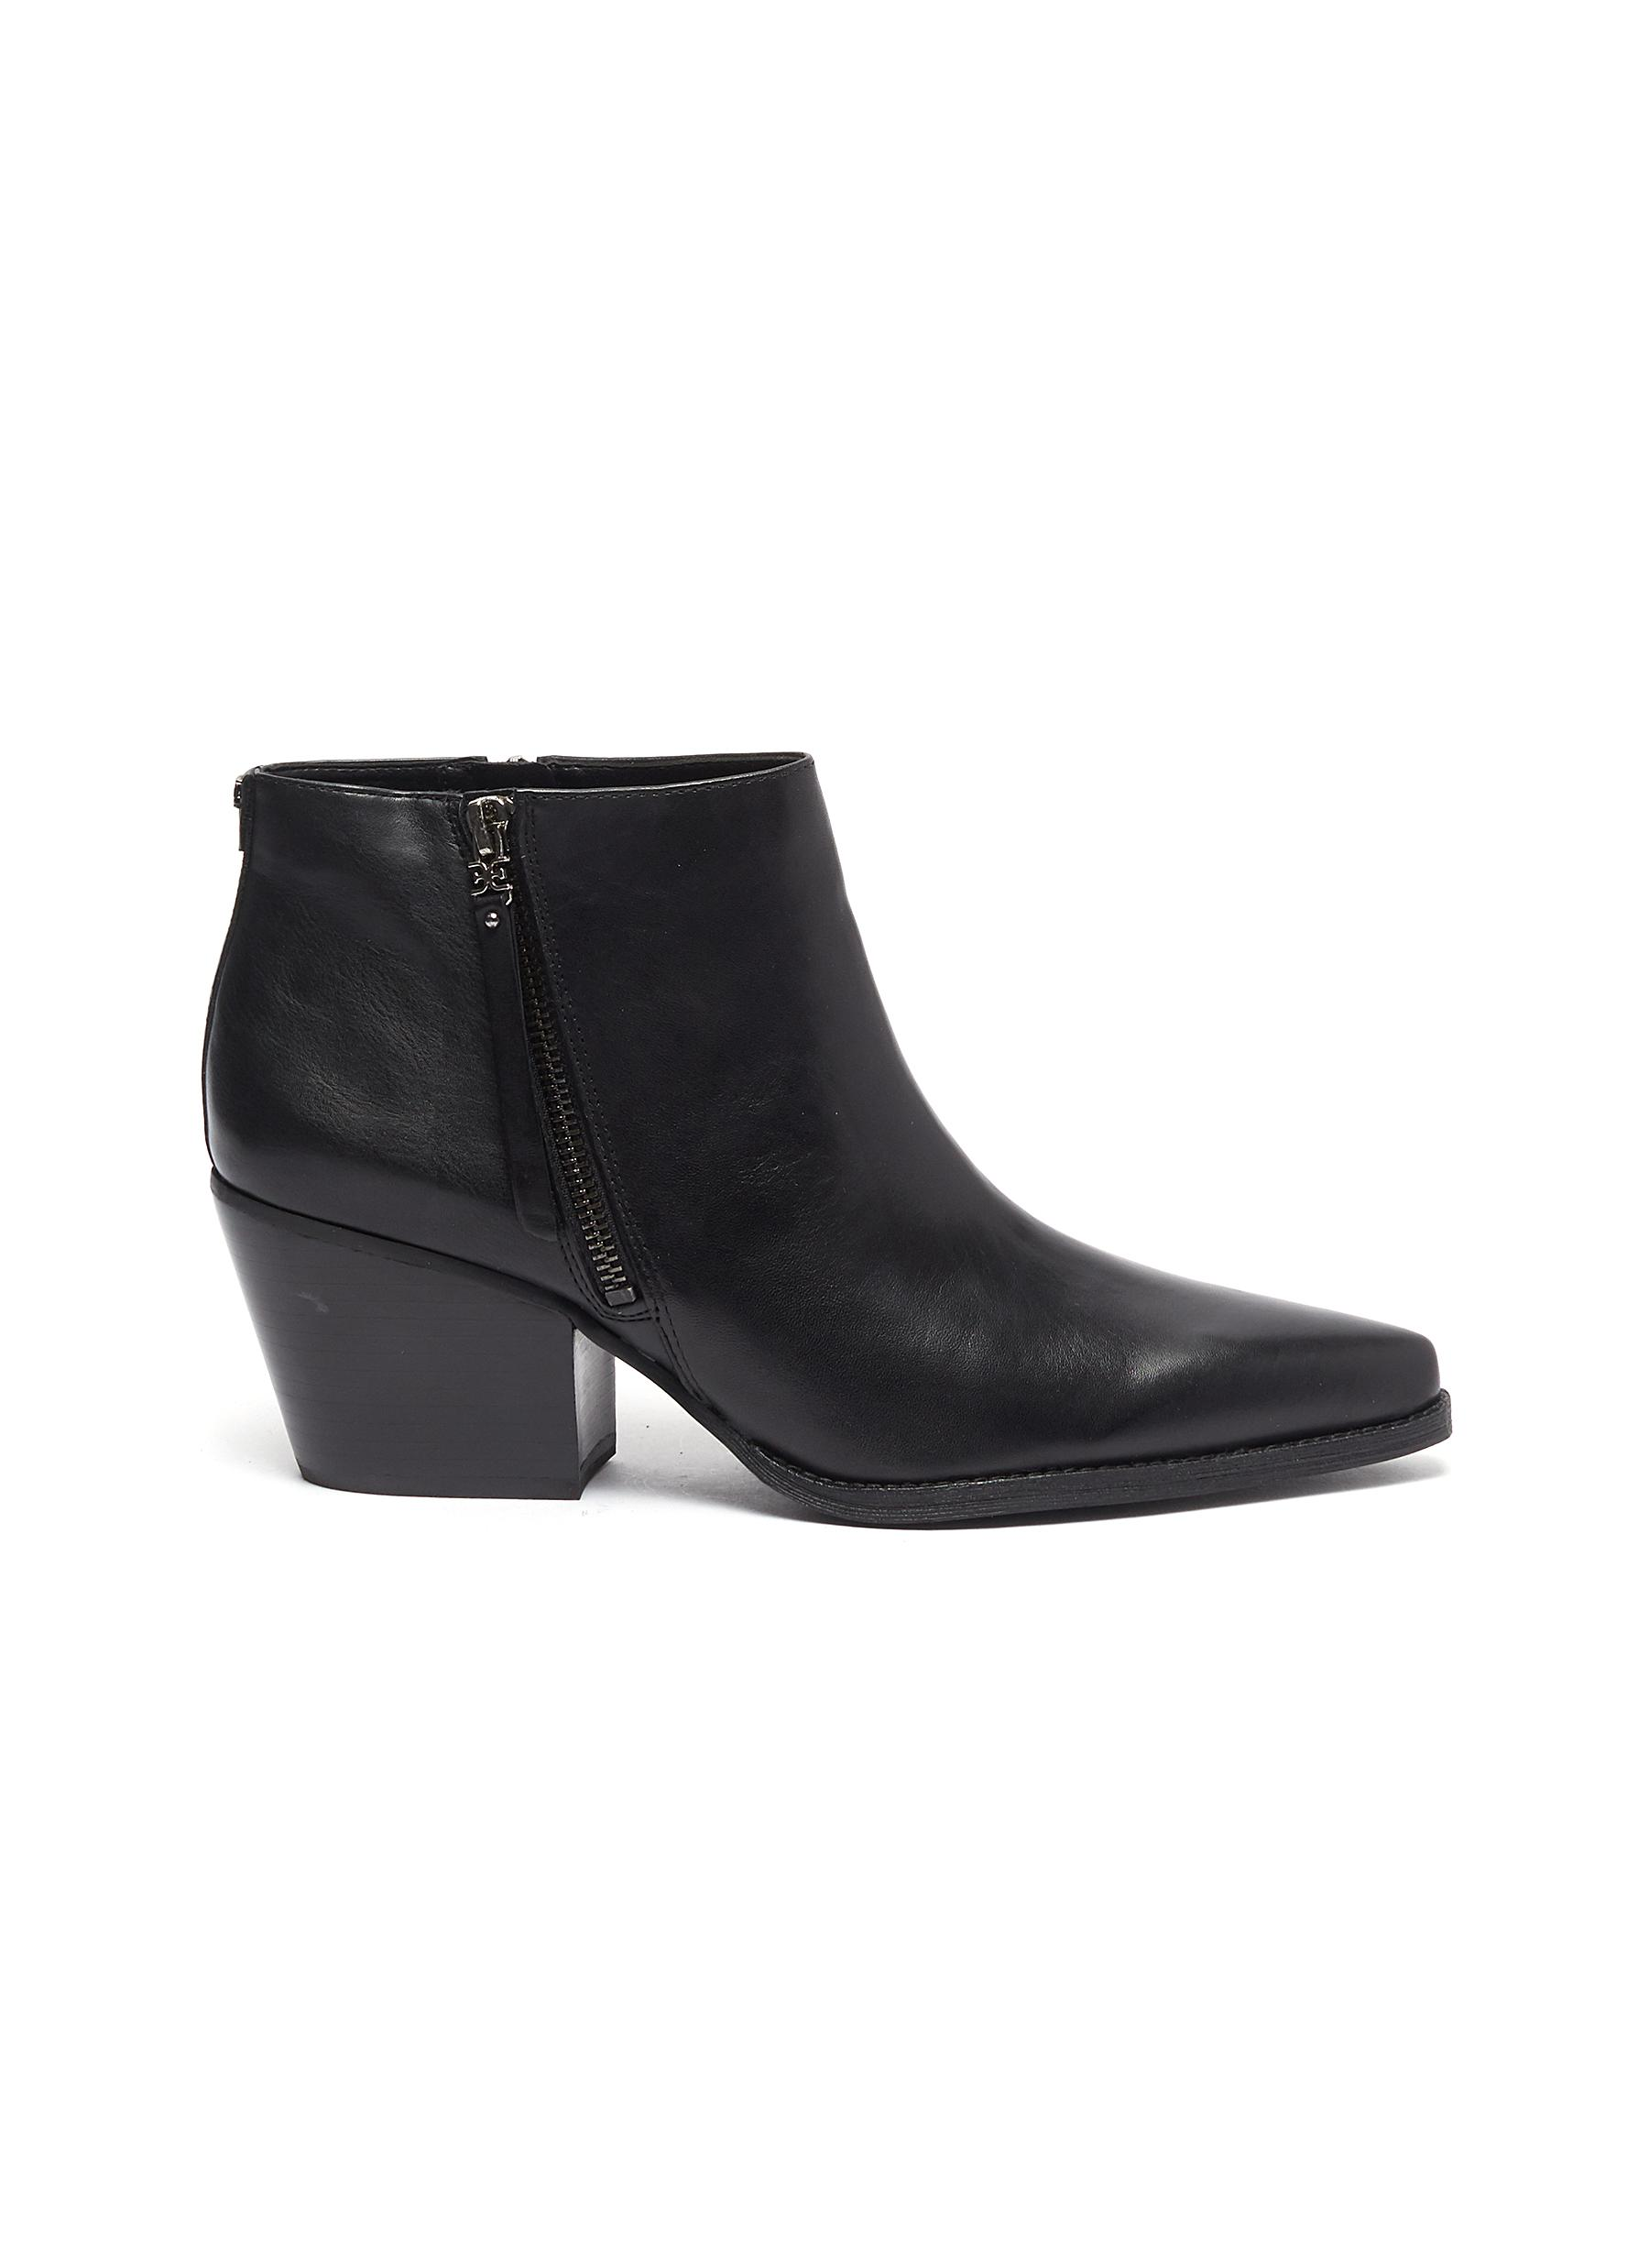 Walden leather ankle boots by Sam Edelman